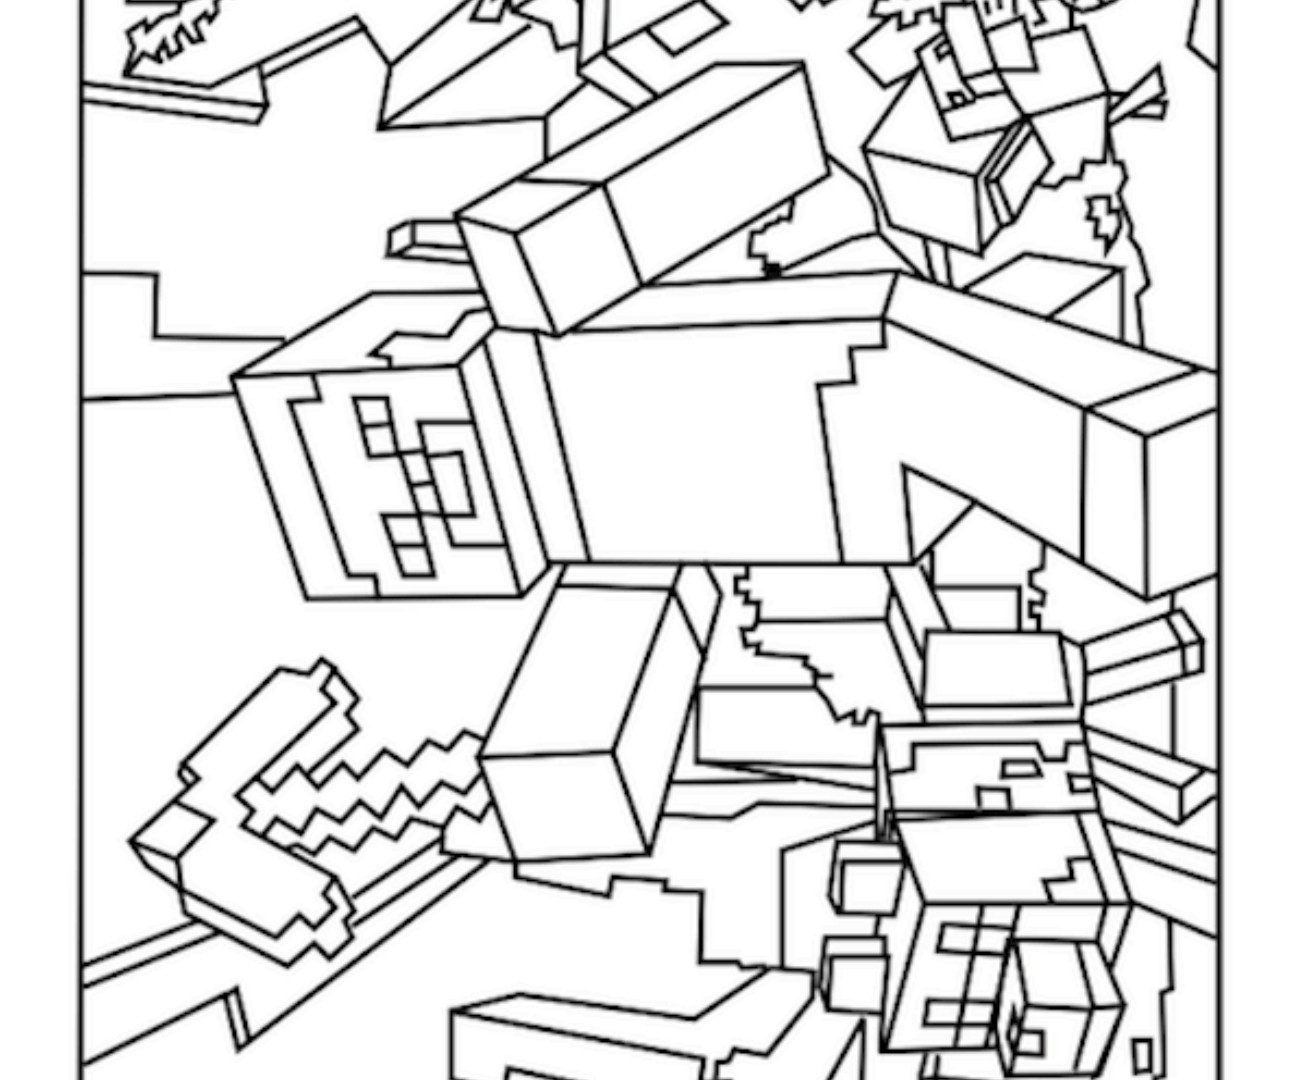 lego minecraft coloring pages lego minecraft coloring pages at getdrawings free download coloring minecraft lego pages